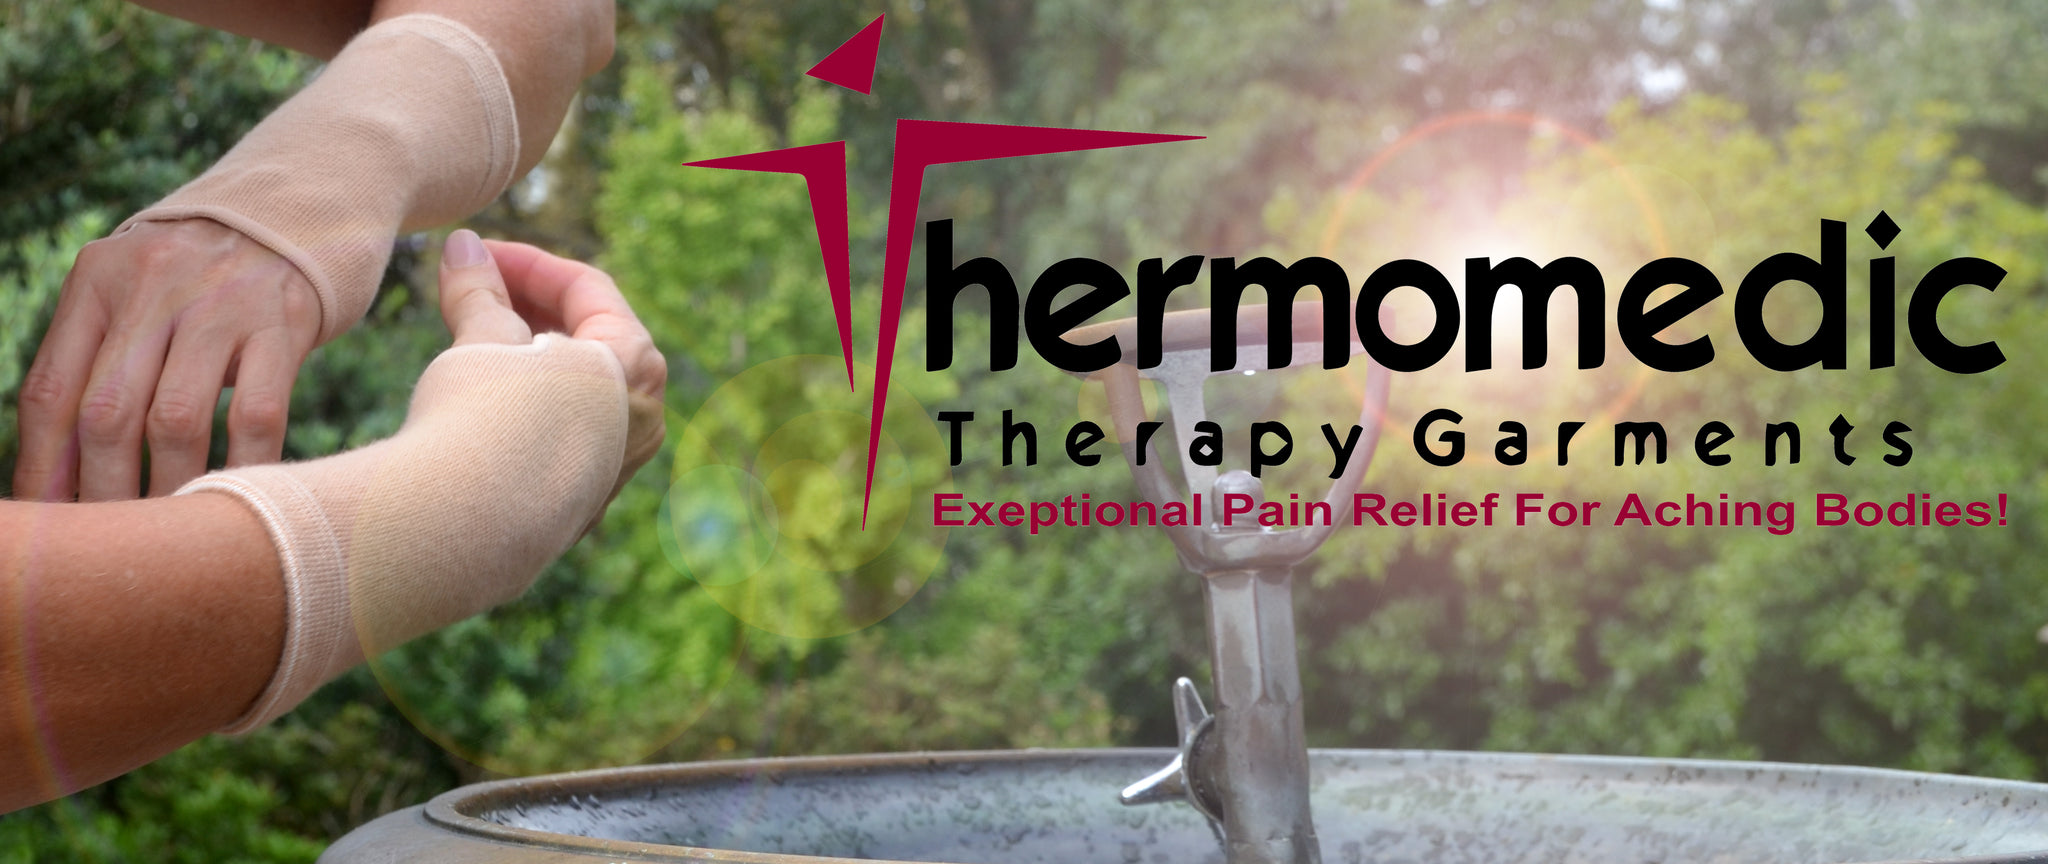 Arthritis Treatment Gloves From Thermomedic For Soothing Pain Relief Without Drugs